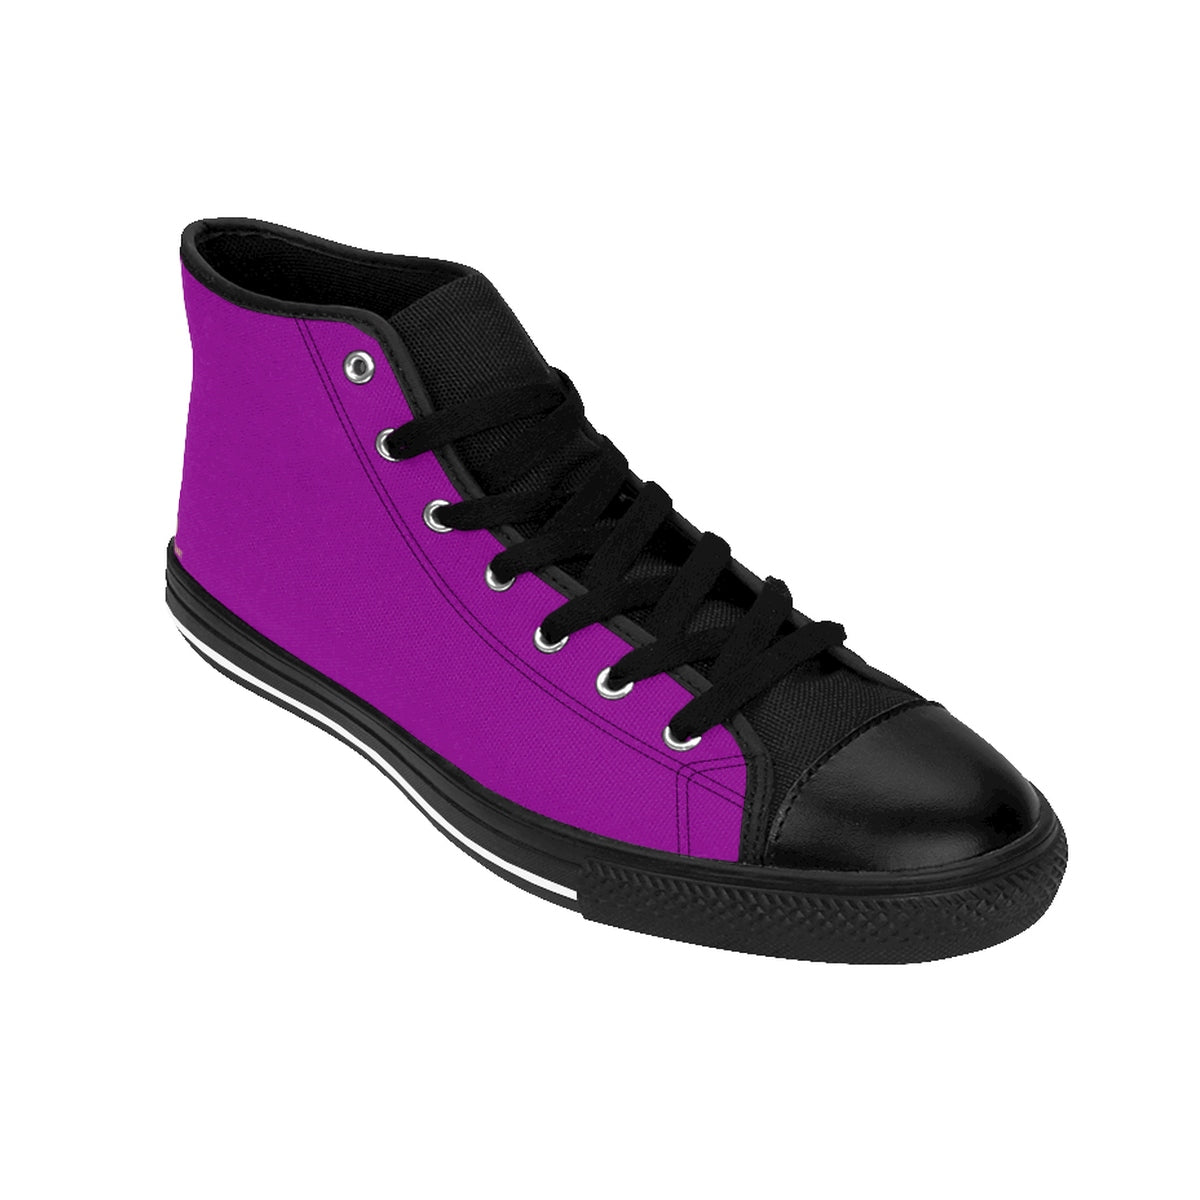 Hot Purple Solid Color Print Premium Men's High-top Premium Fashion Sneakers-Men's High Top Sneakers-Black-US 9-Heidi Kimura Art LLC